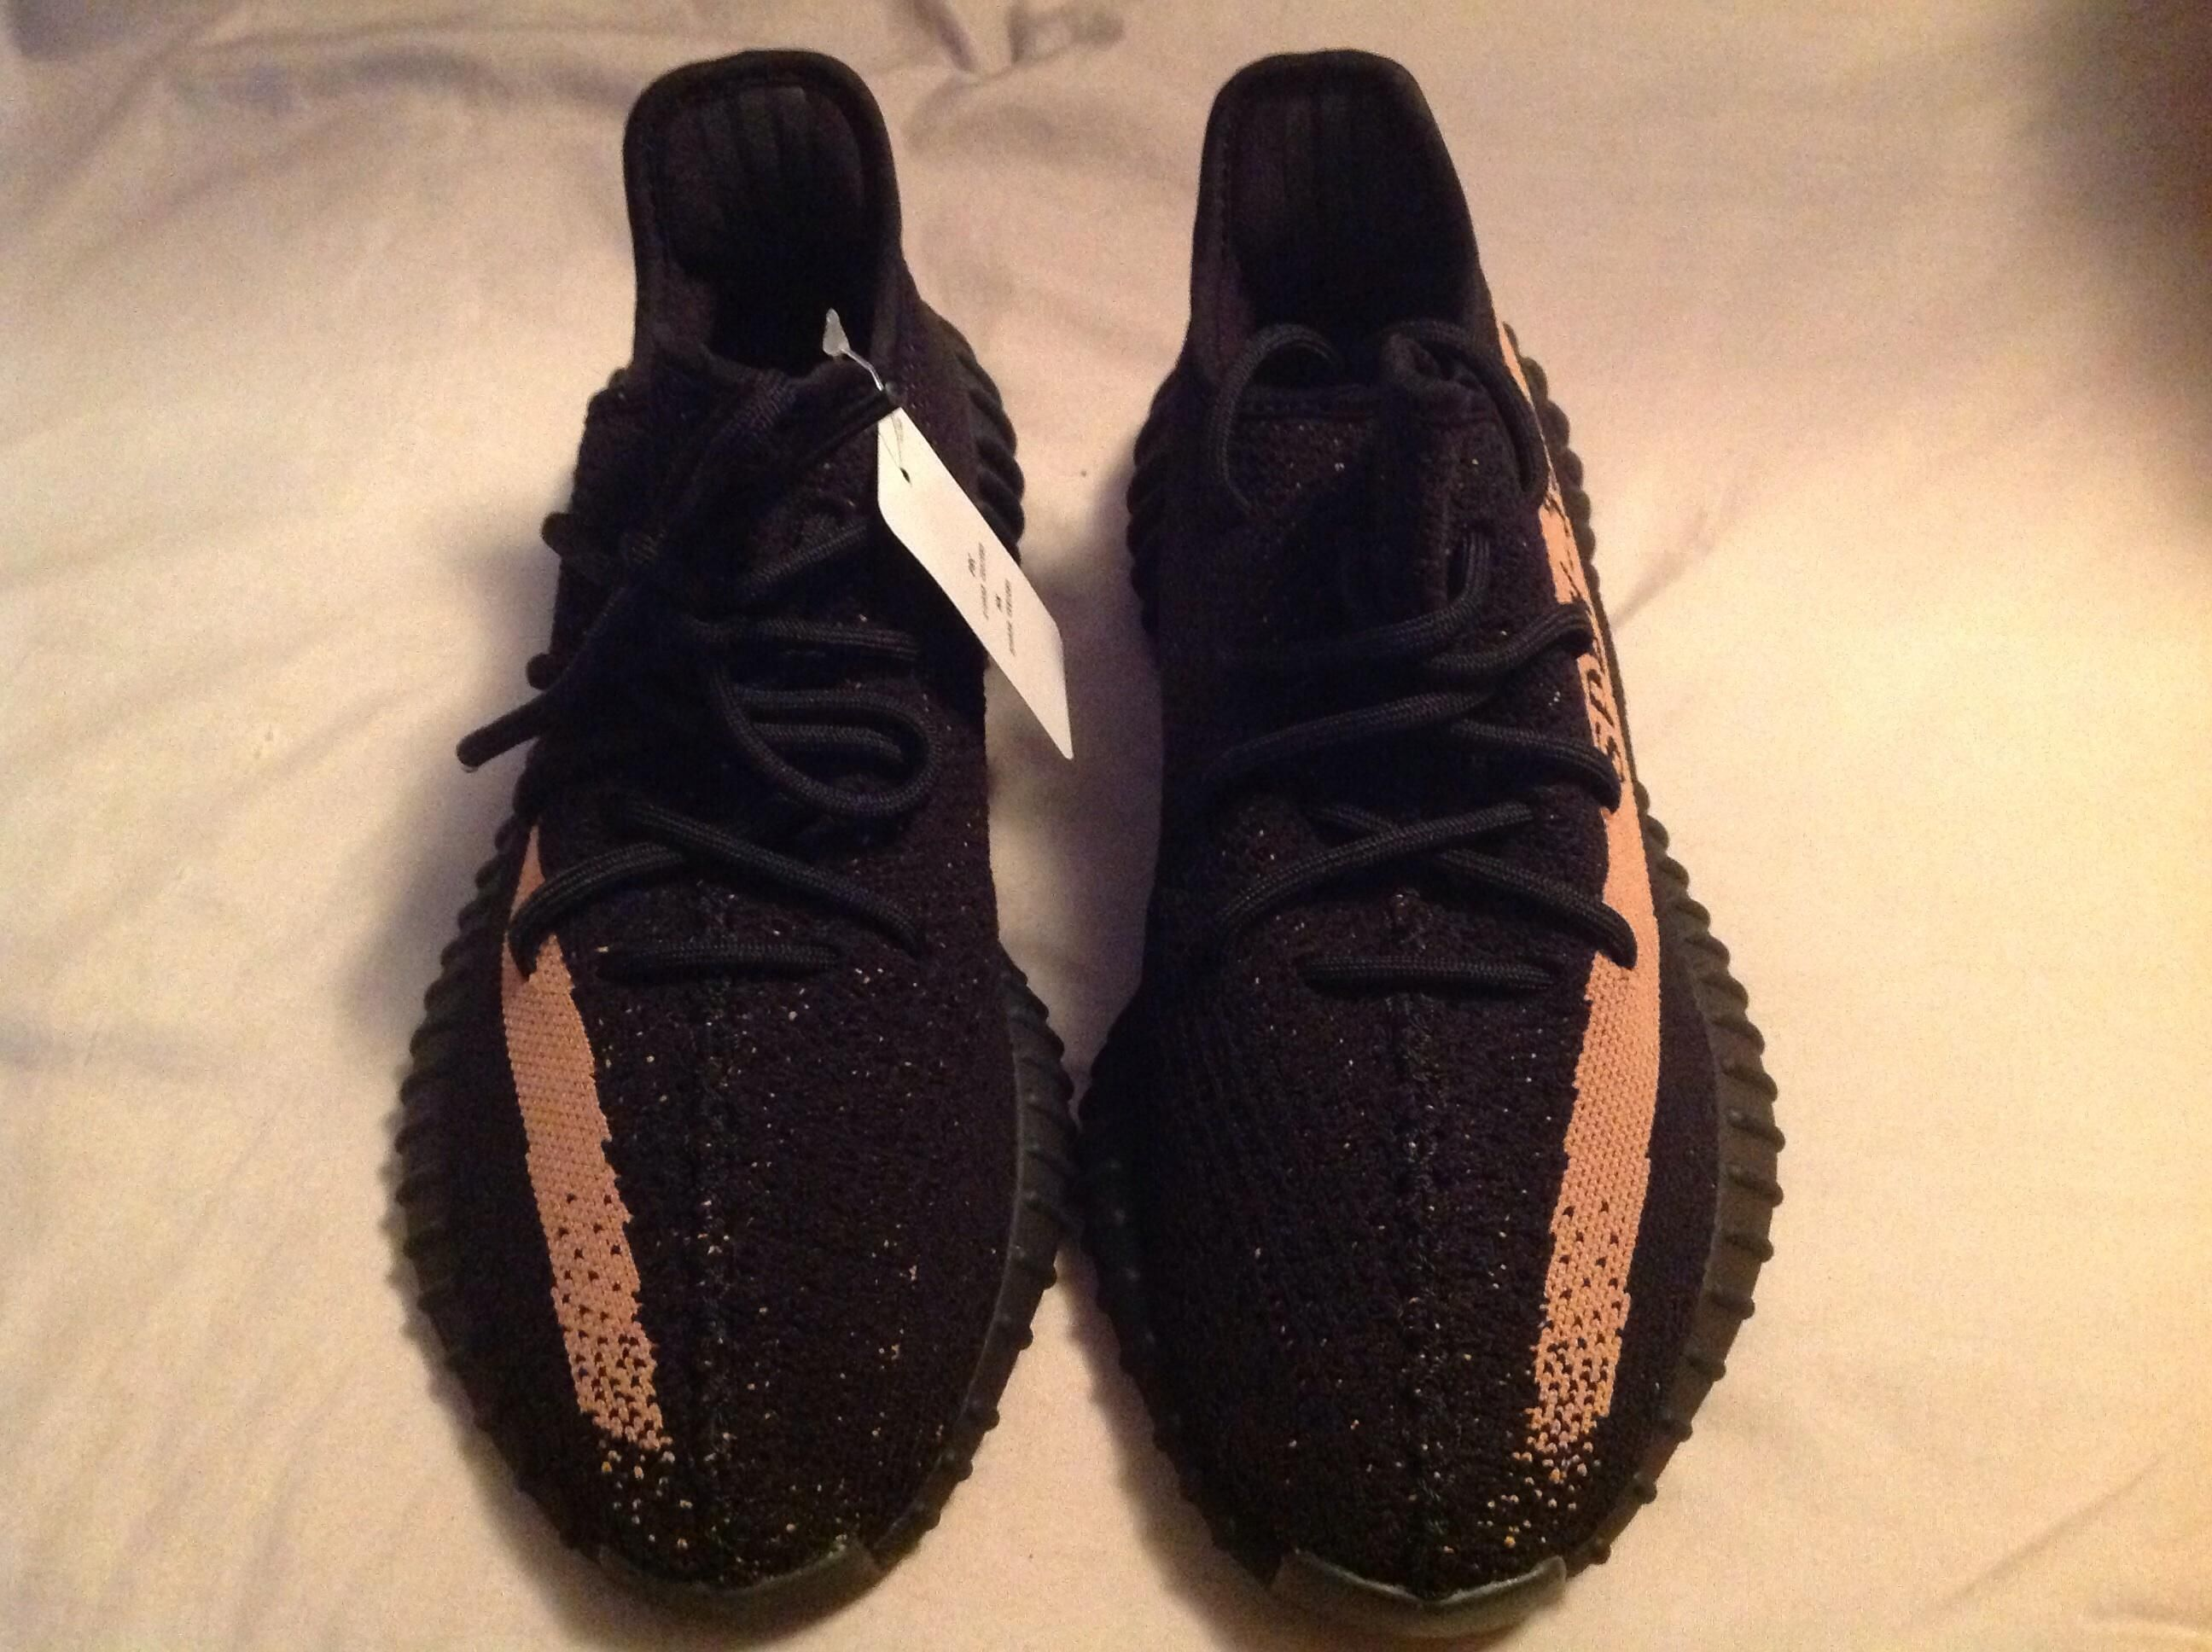 Adidas Yeezy Boost 350 v2 Copper BY 1605 [BY 1605] $ 188.00